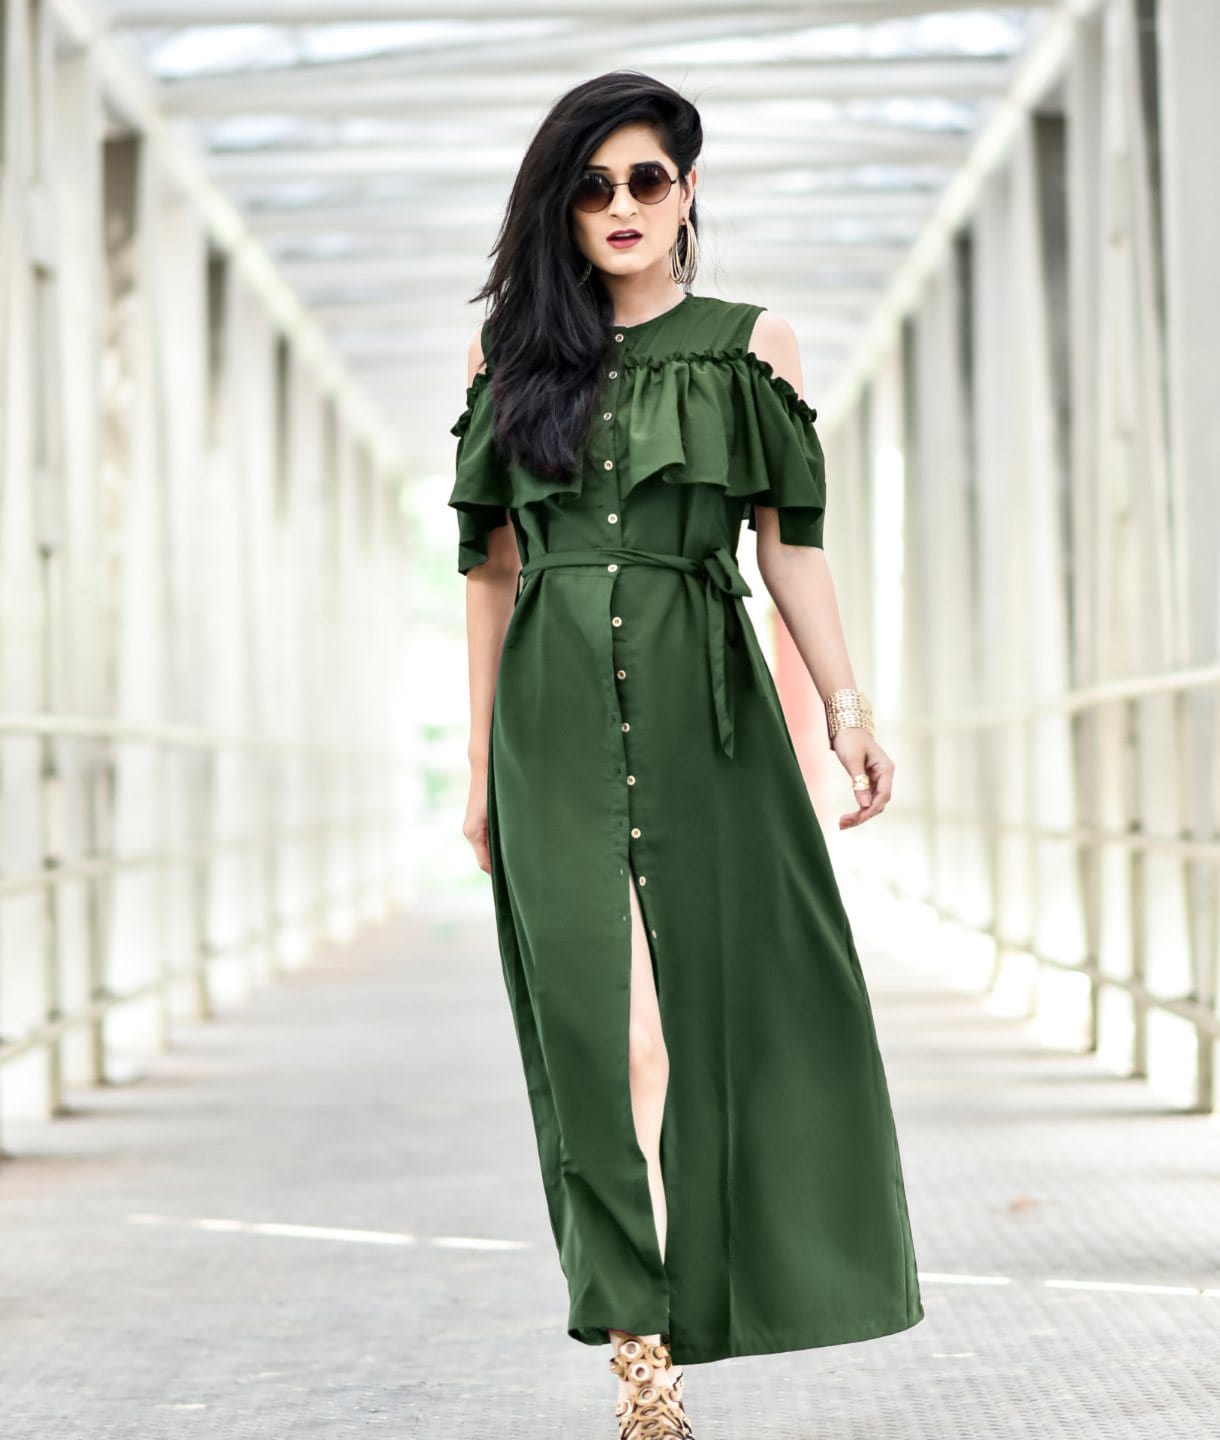 Ruffled Buttoned Cold Shoulder Green Maxi Maternity Dress